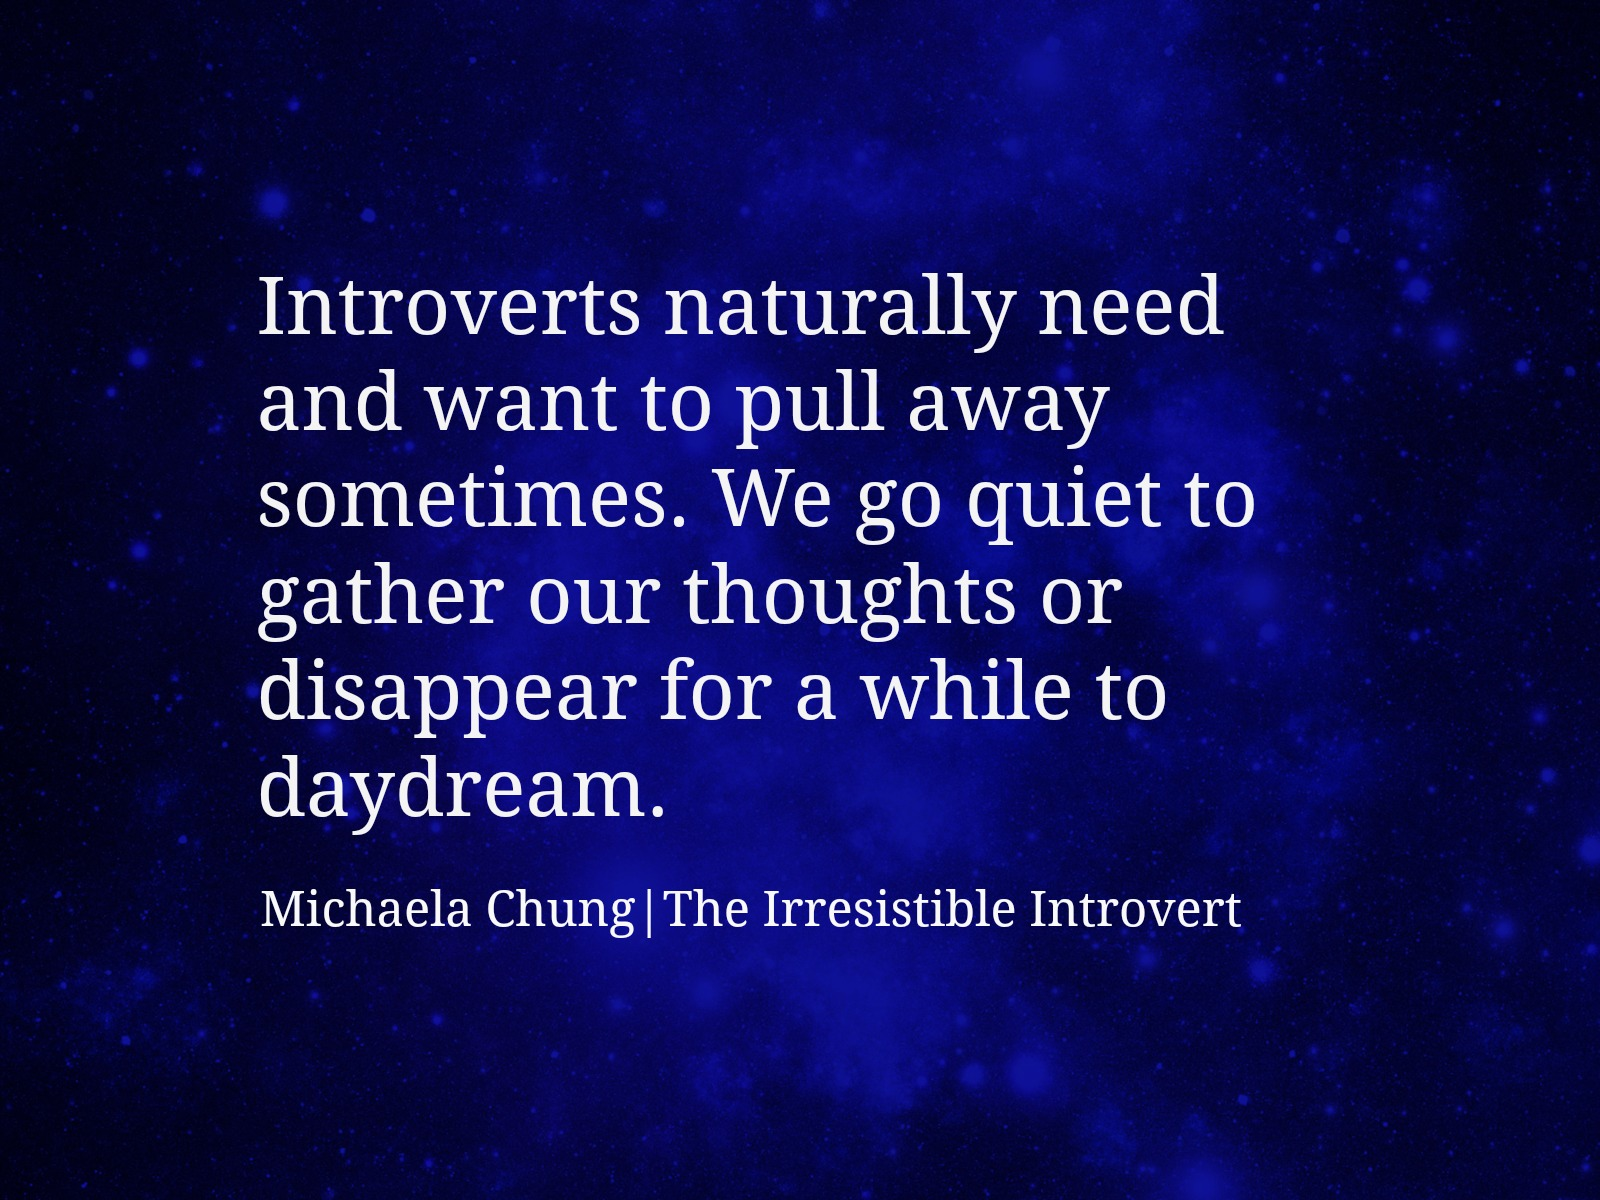 Irresistible Introvert